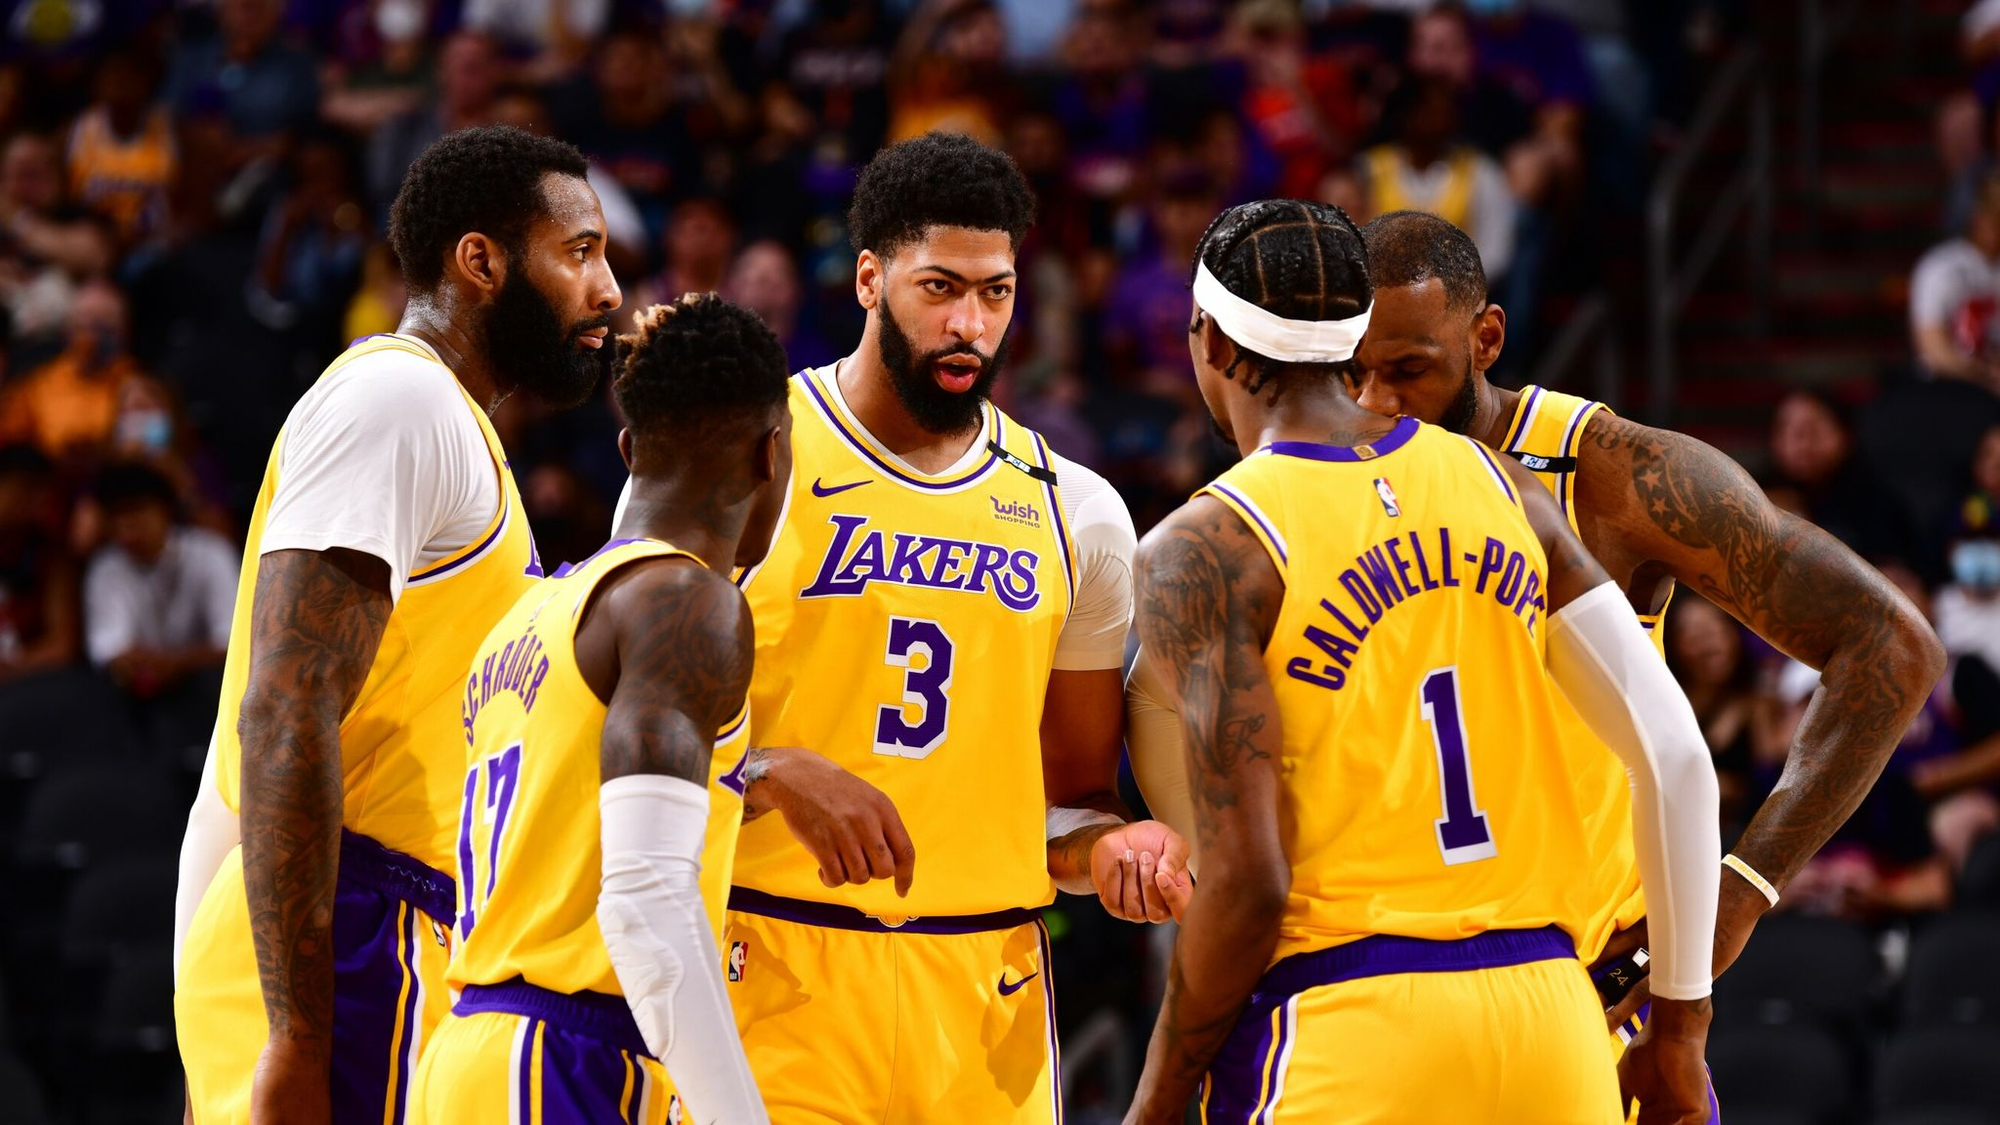 NBA playoffs betting: Surprising twists could lead to big-time value